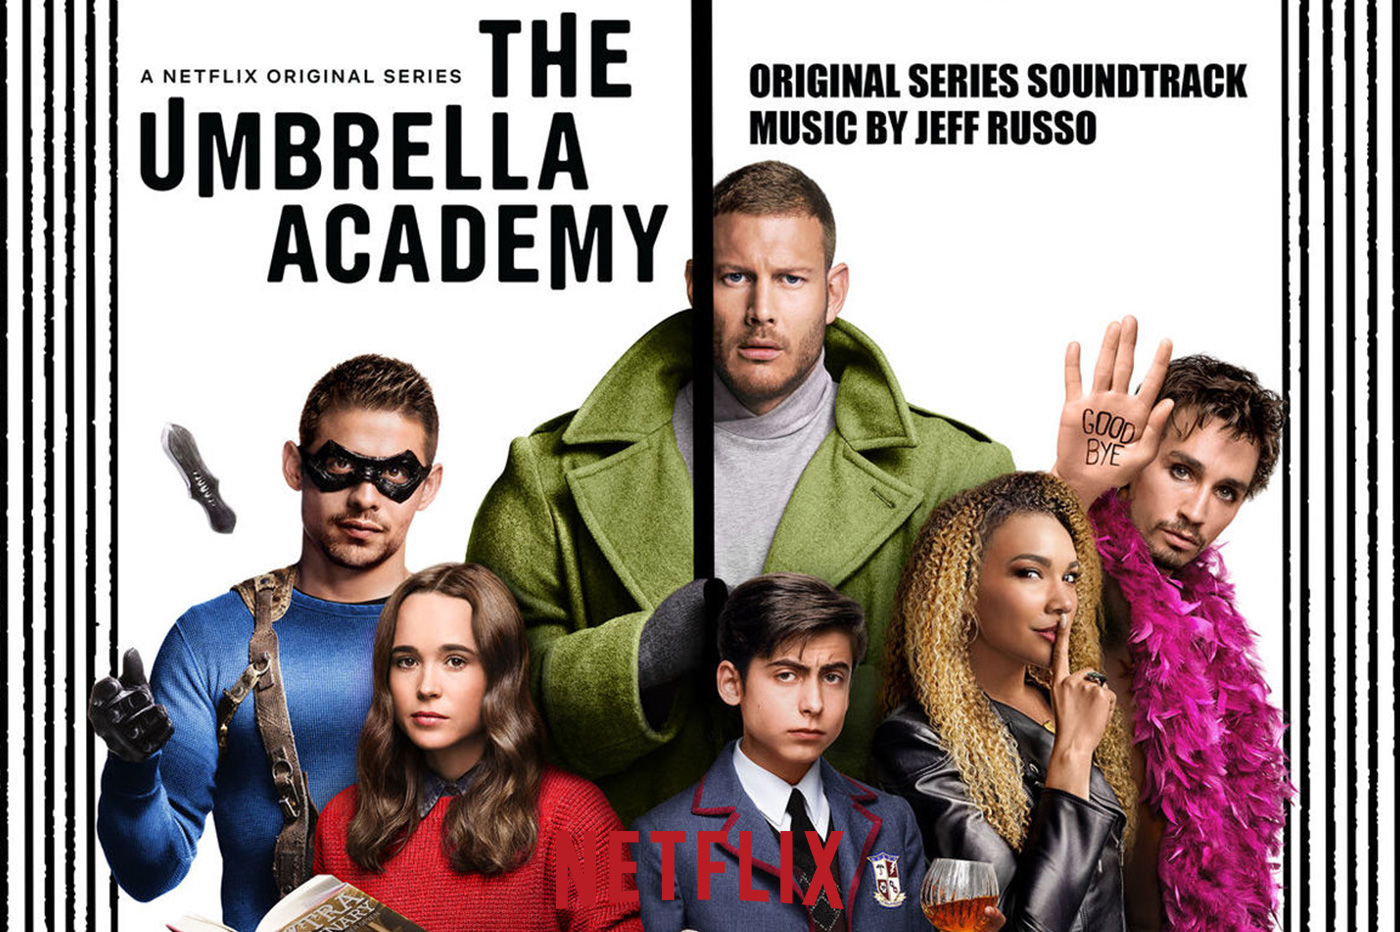 Netflix The Umbrella Academy